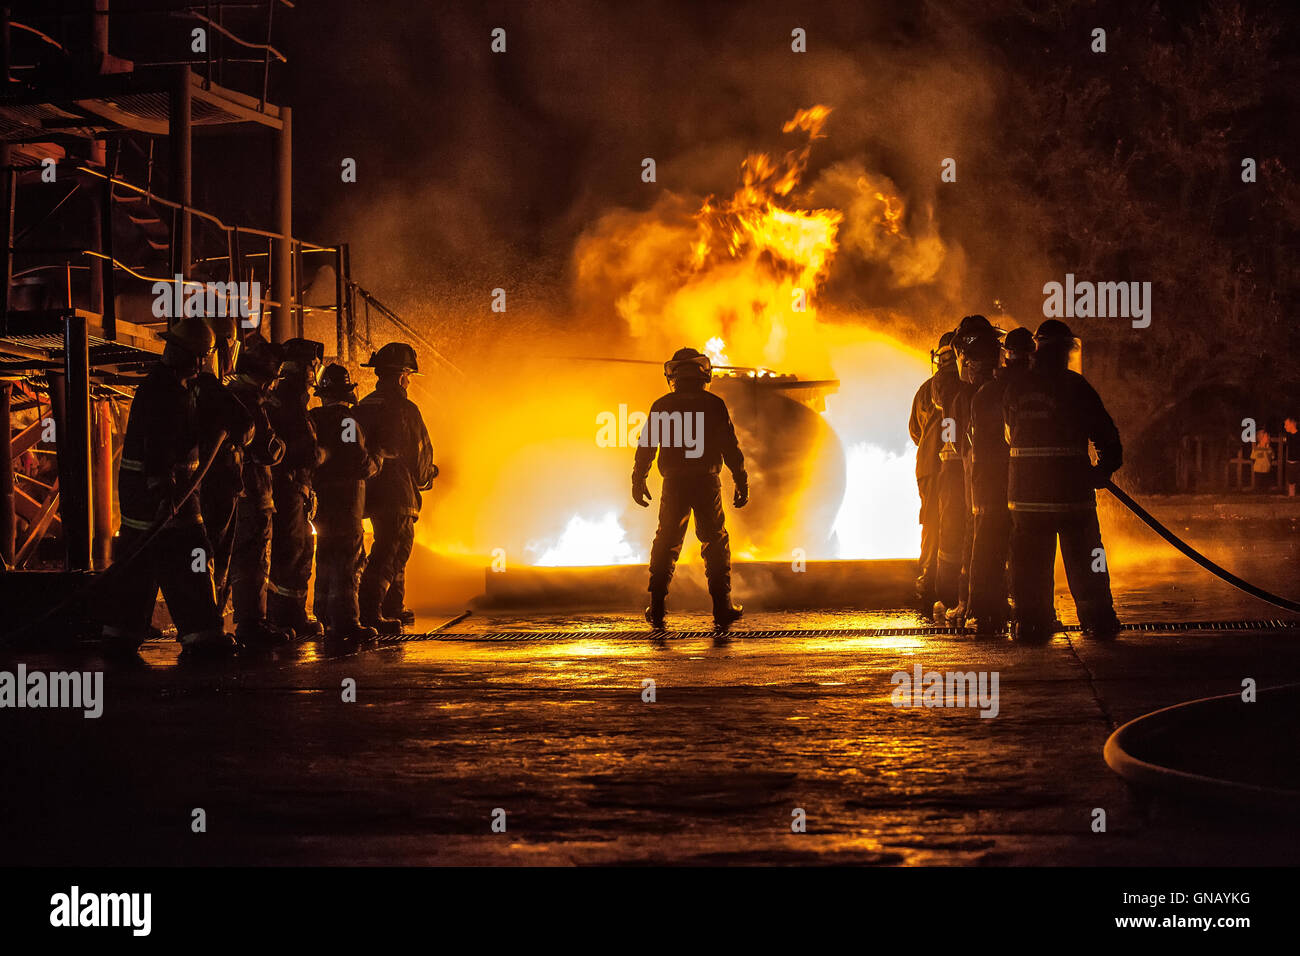 Firechief controlling two teams fighting a fire - Stock Image